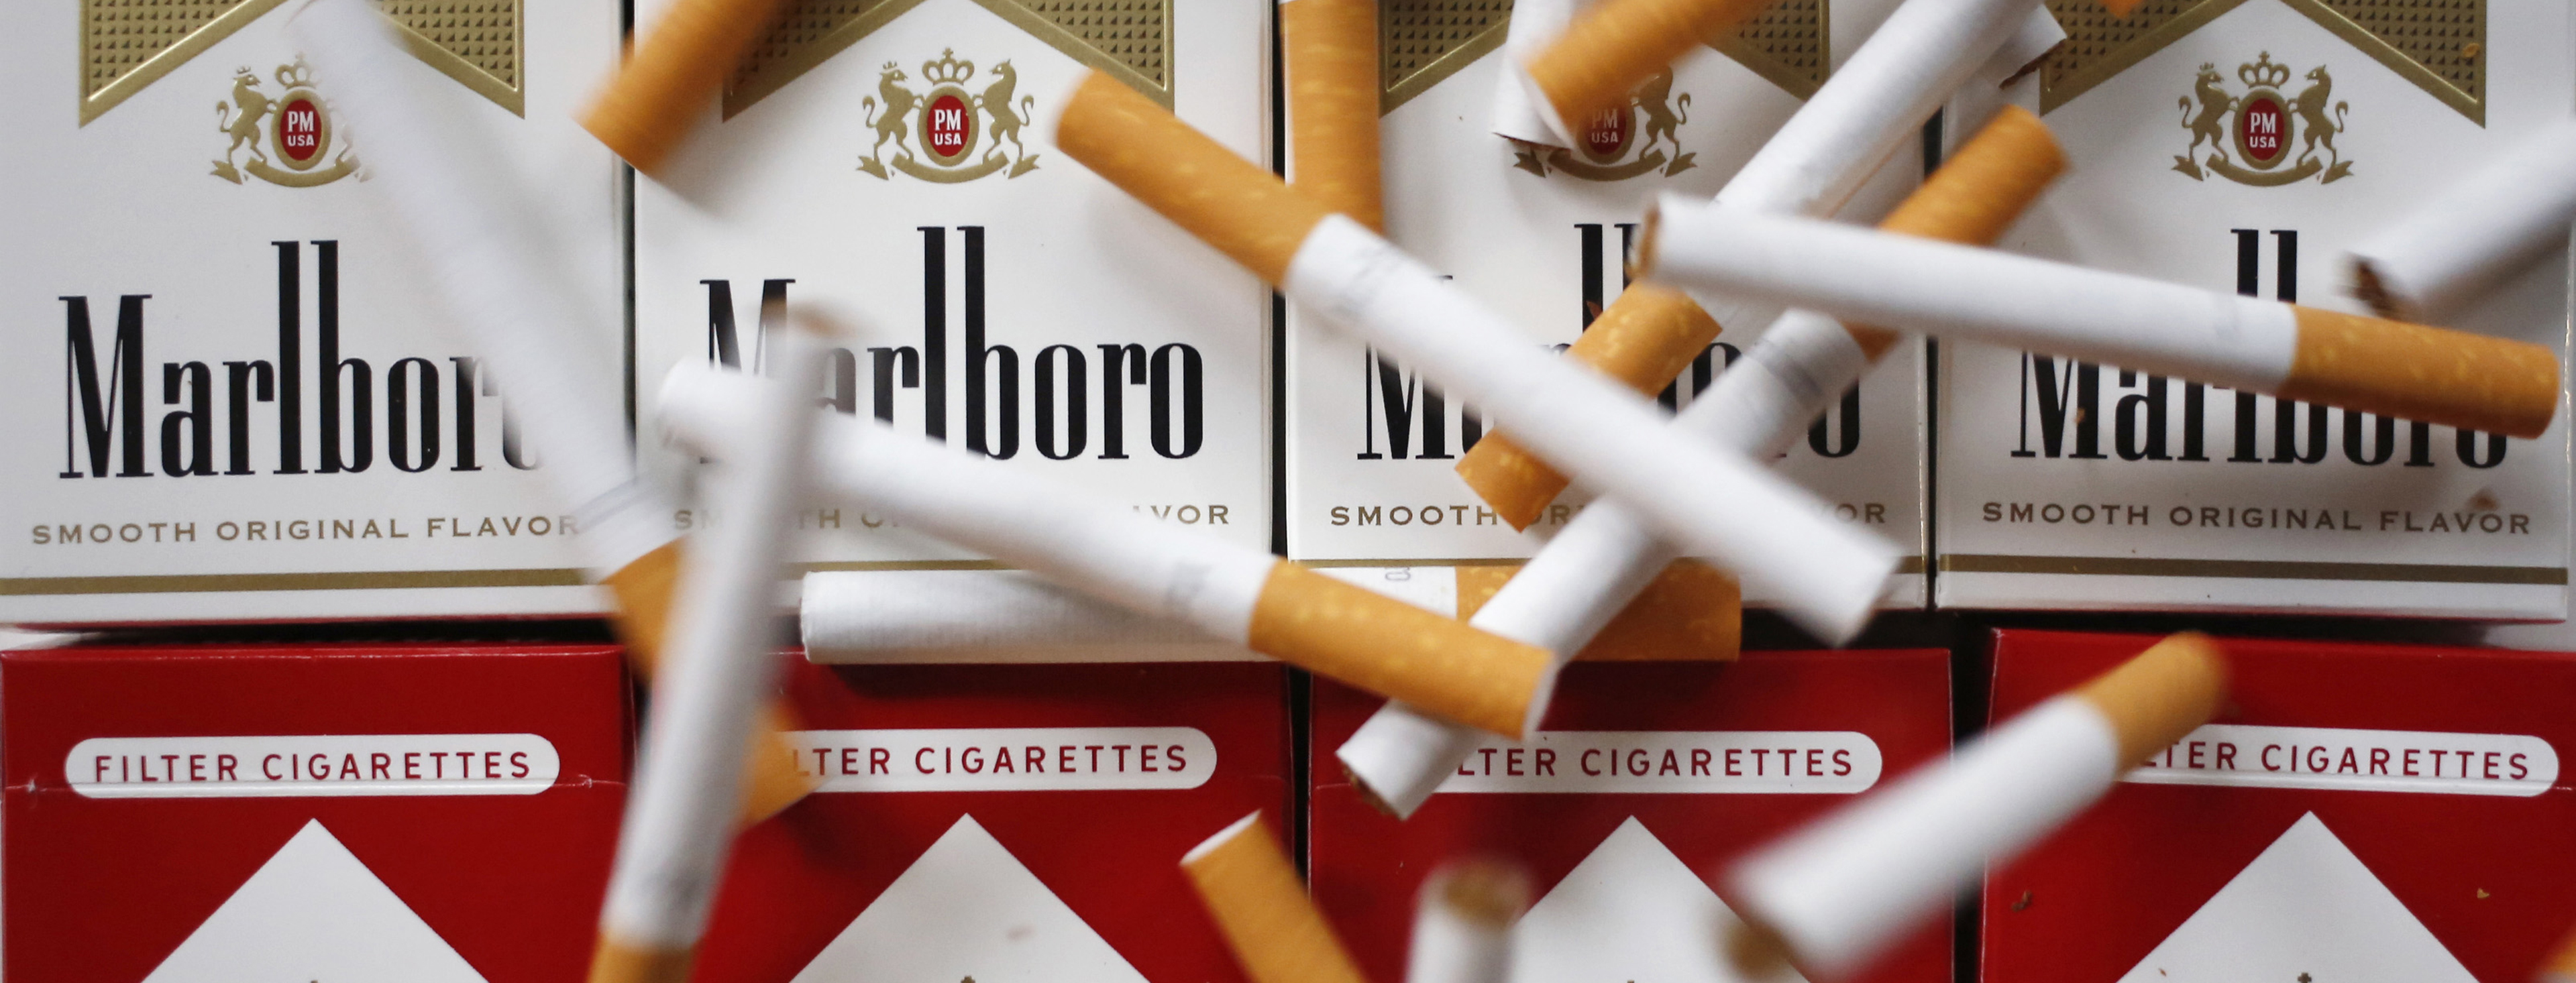 Philip Morris International Brand Cigarettes Ahead Of Earnings Figures